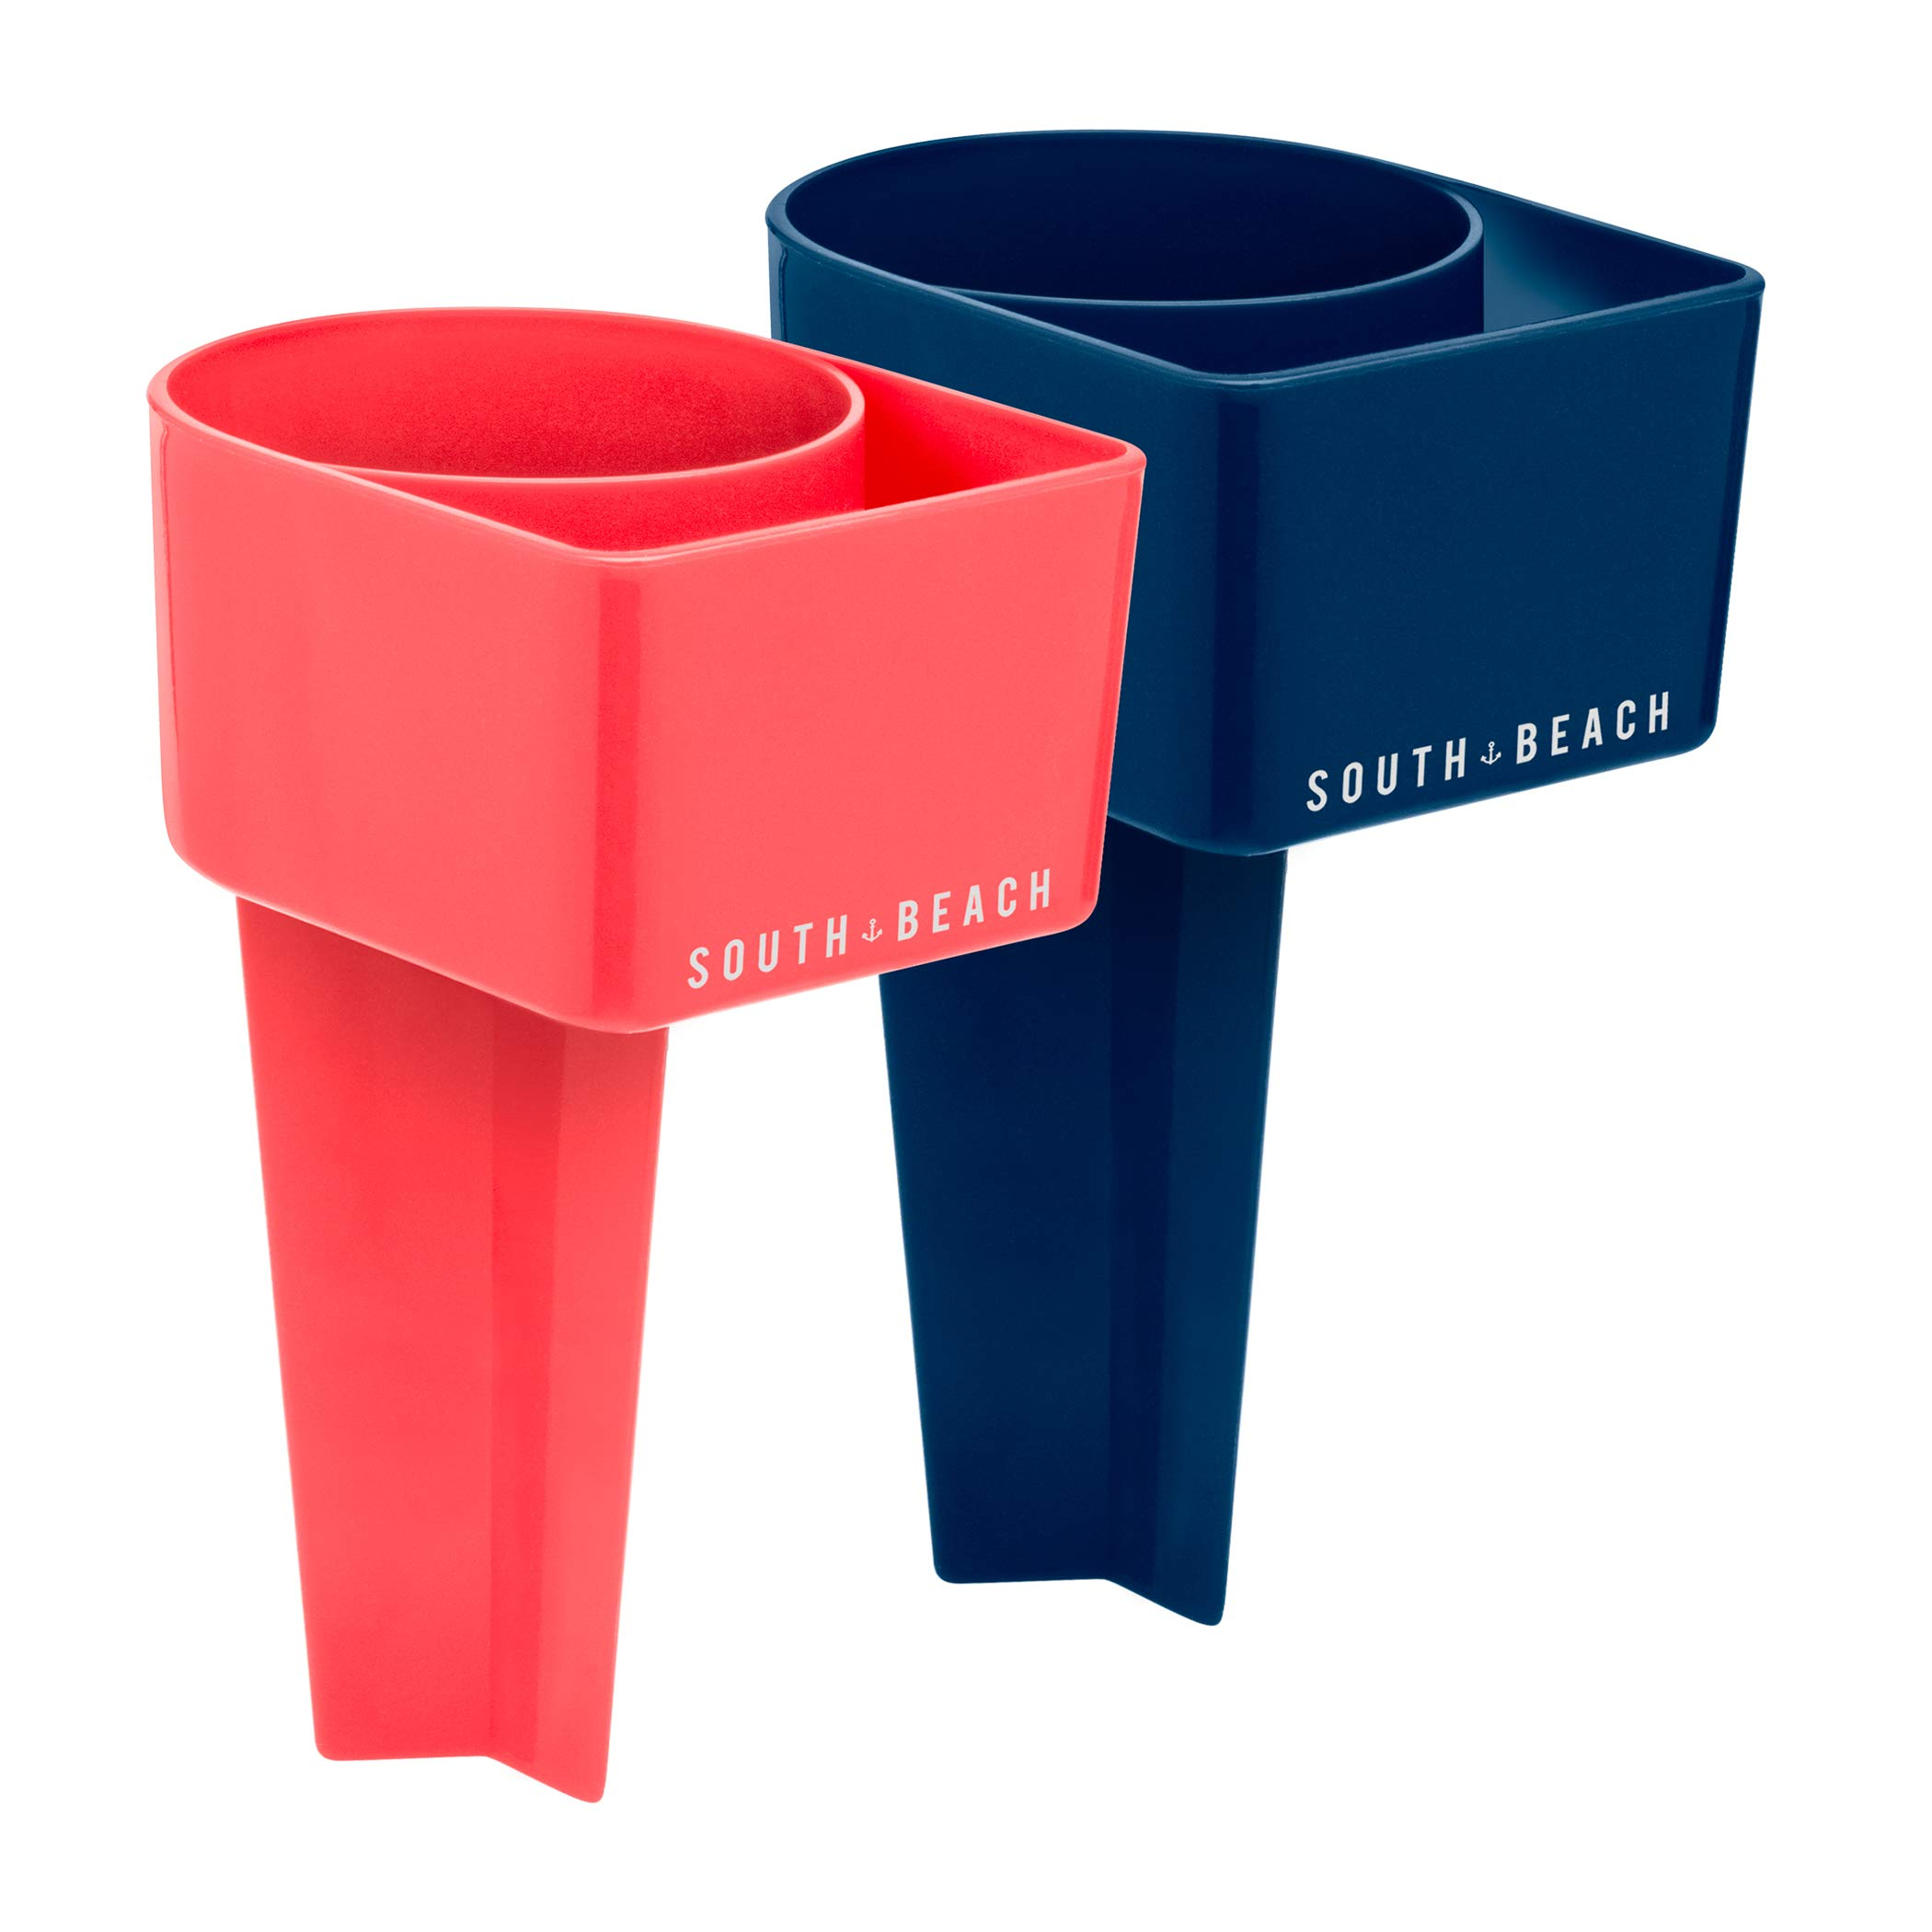 SOUTH BEACH Stick in Sand Drink Holders - Set of 2 - Perfect for The Beach - Includes Slot for Your Phone (Coral/Navy)